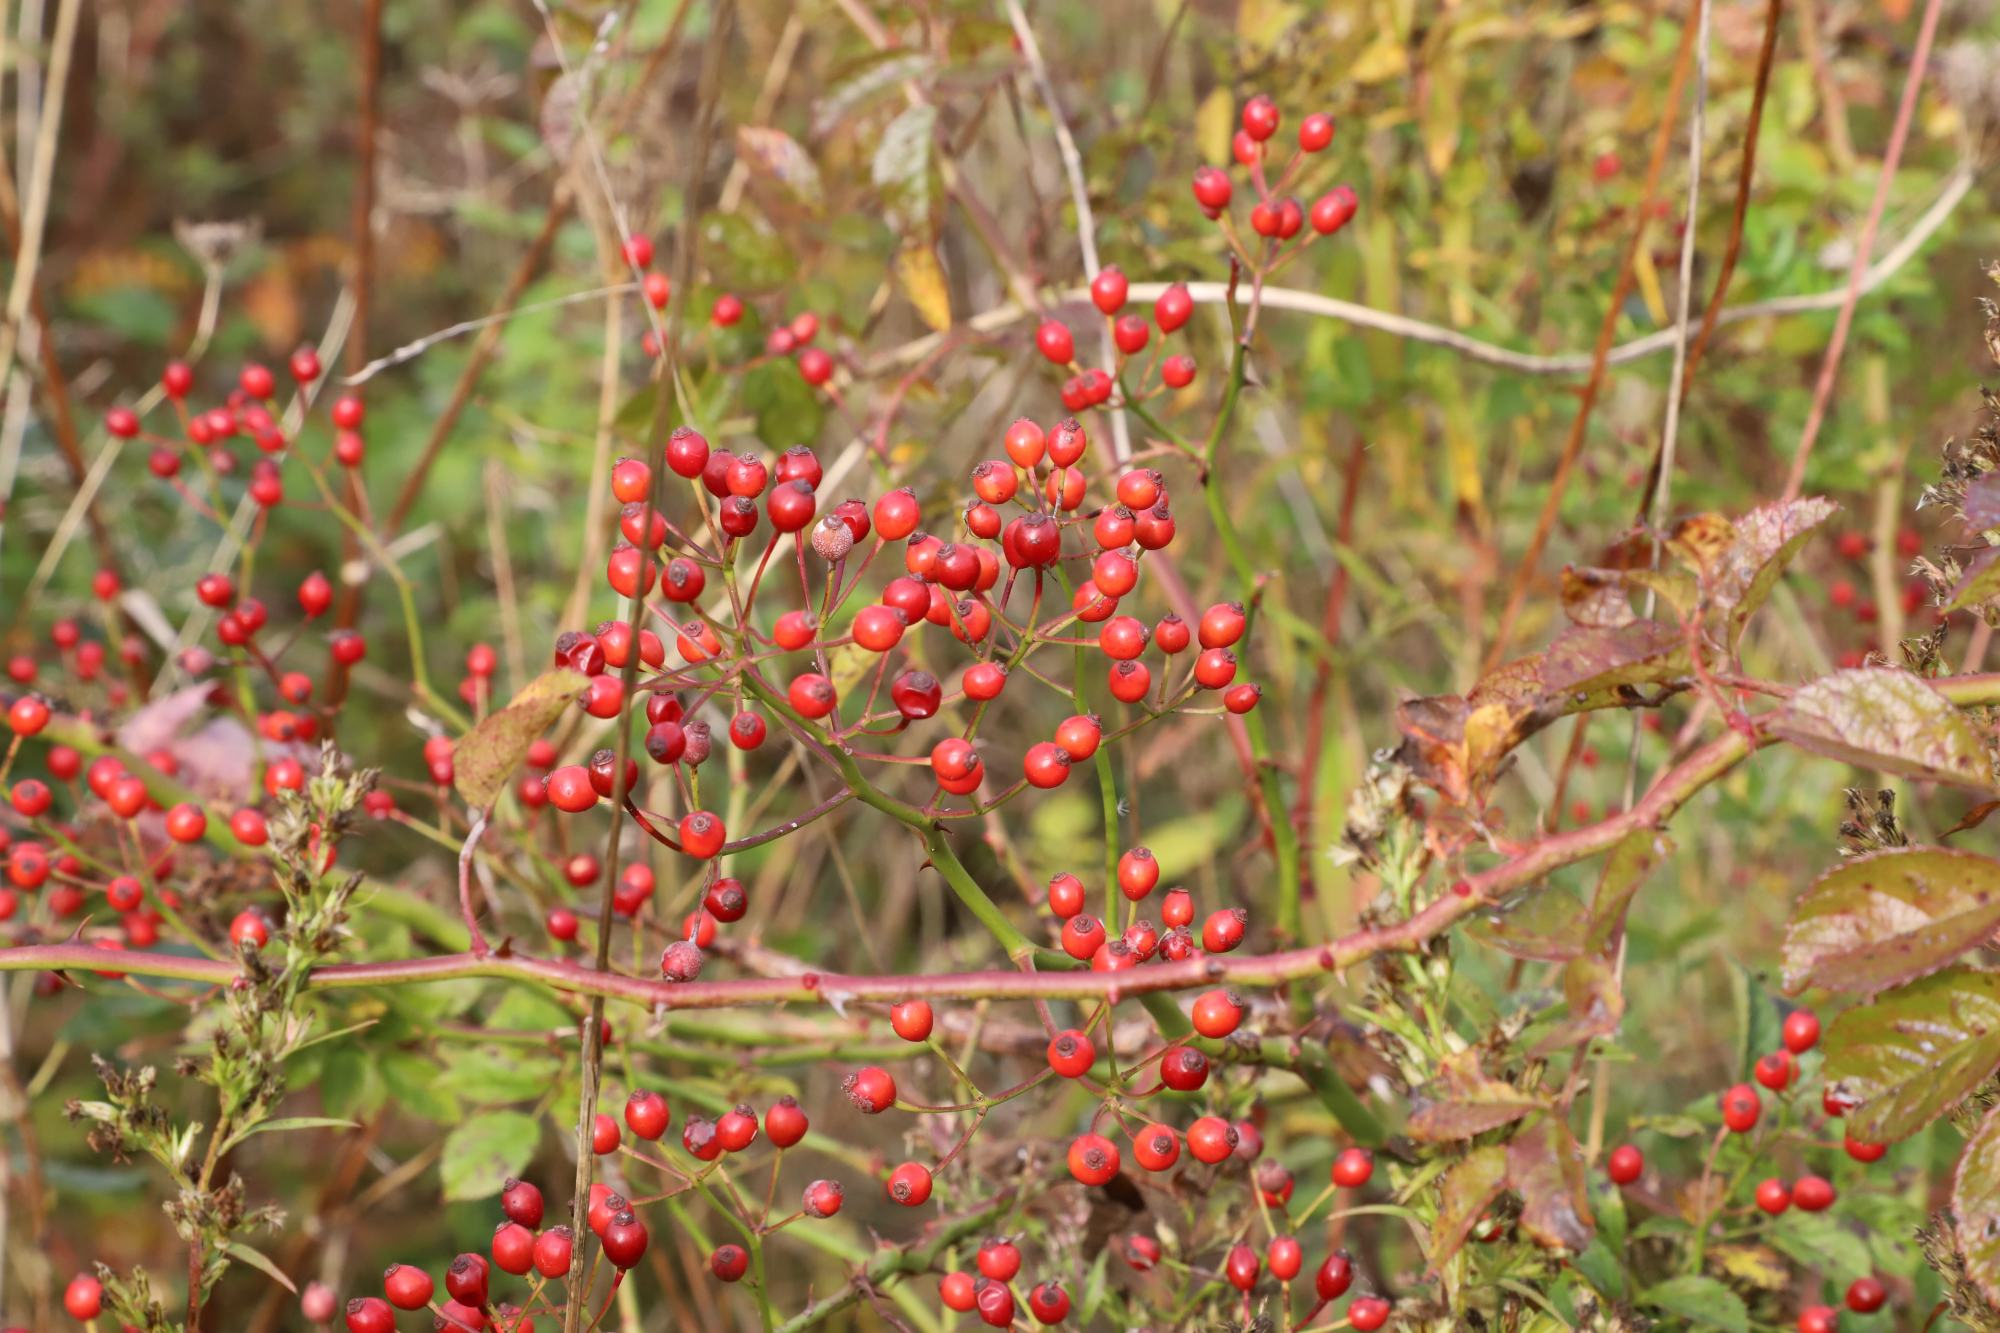 2017-10-21 Westminster Ponds - Berries